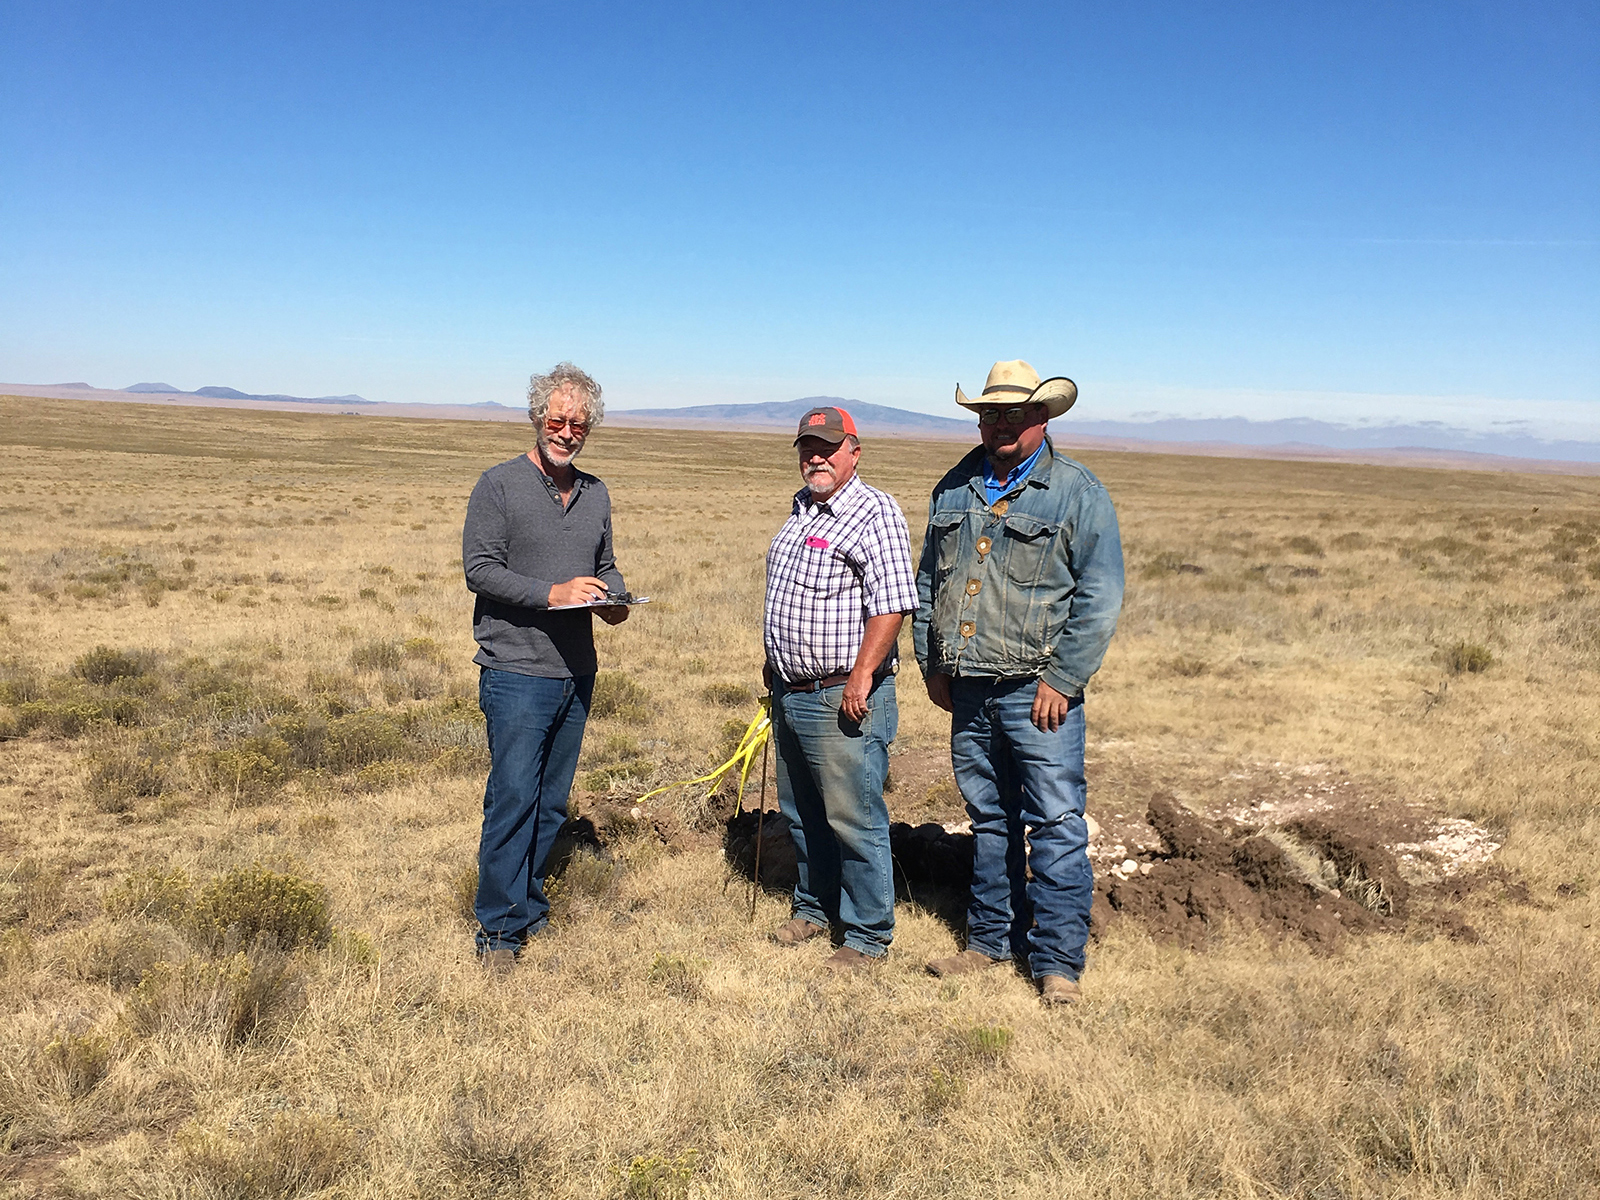 Rich in New Mexico with ranch owners who are building a wind farm